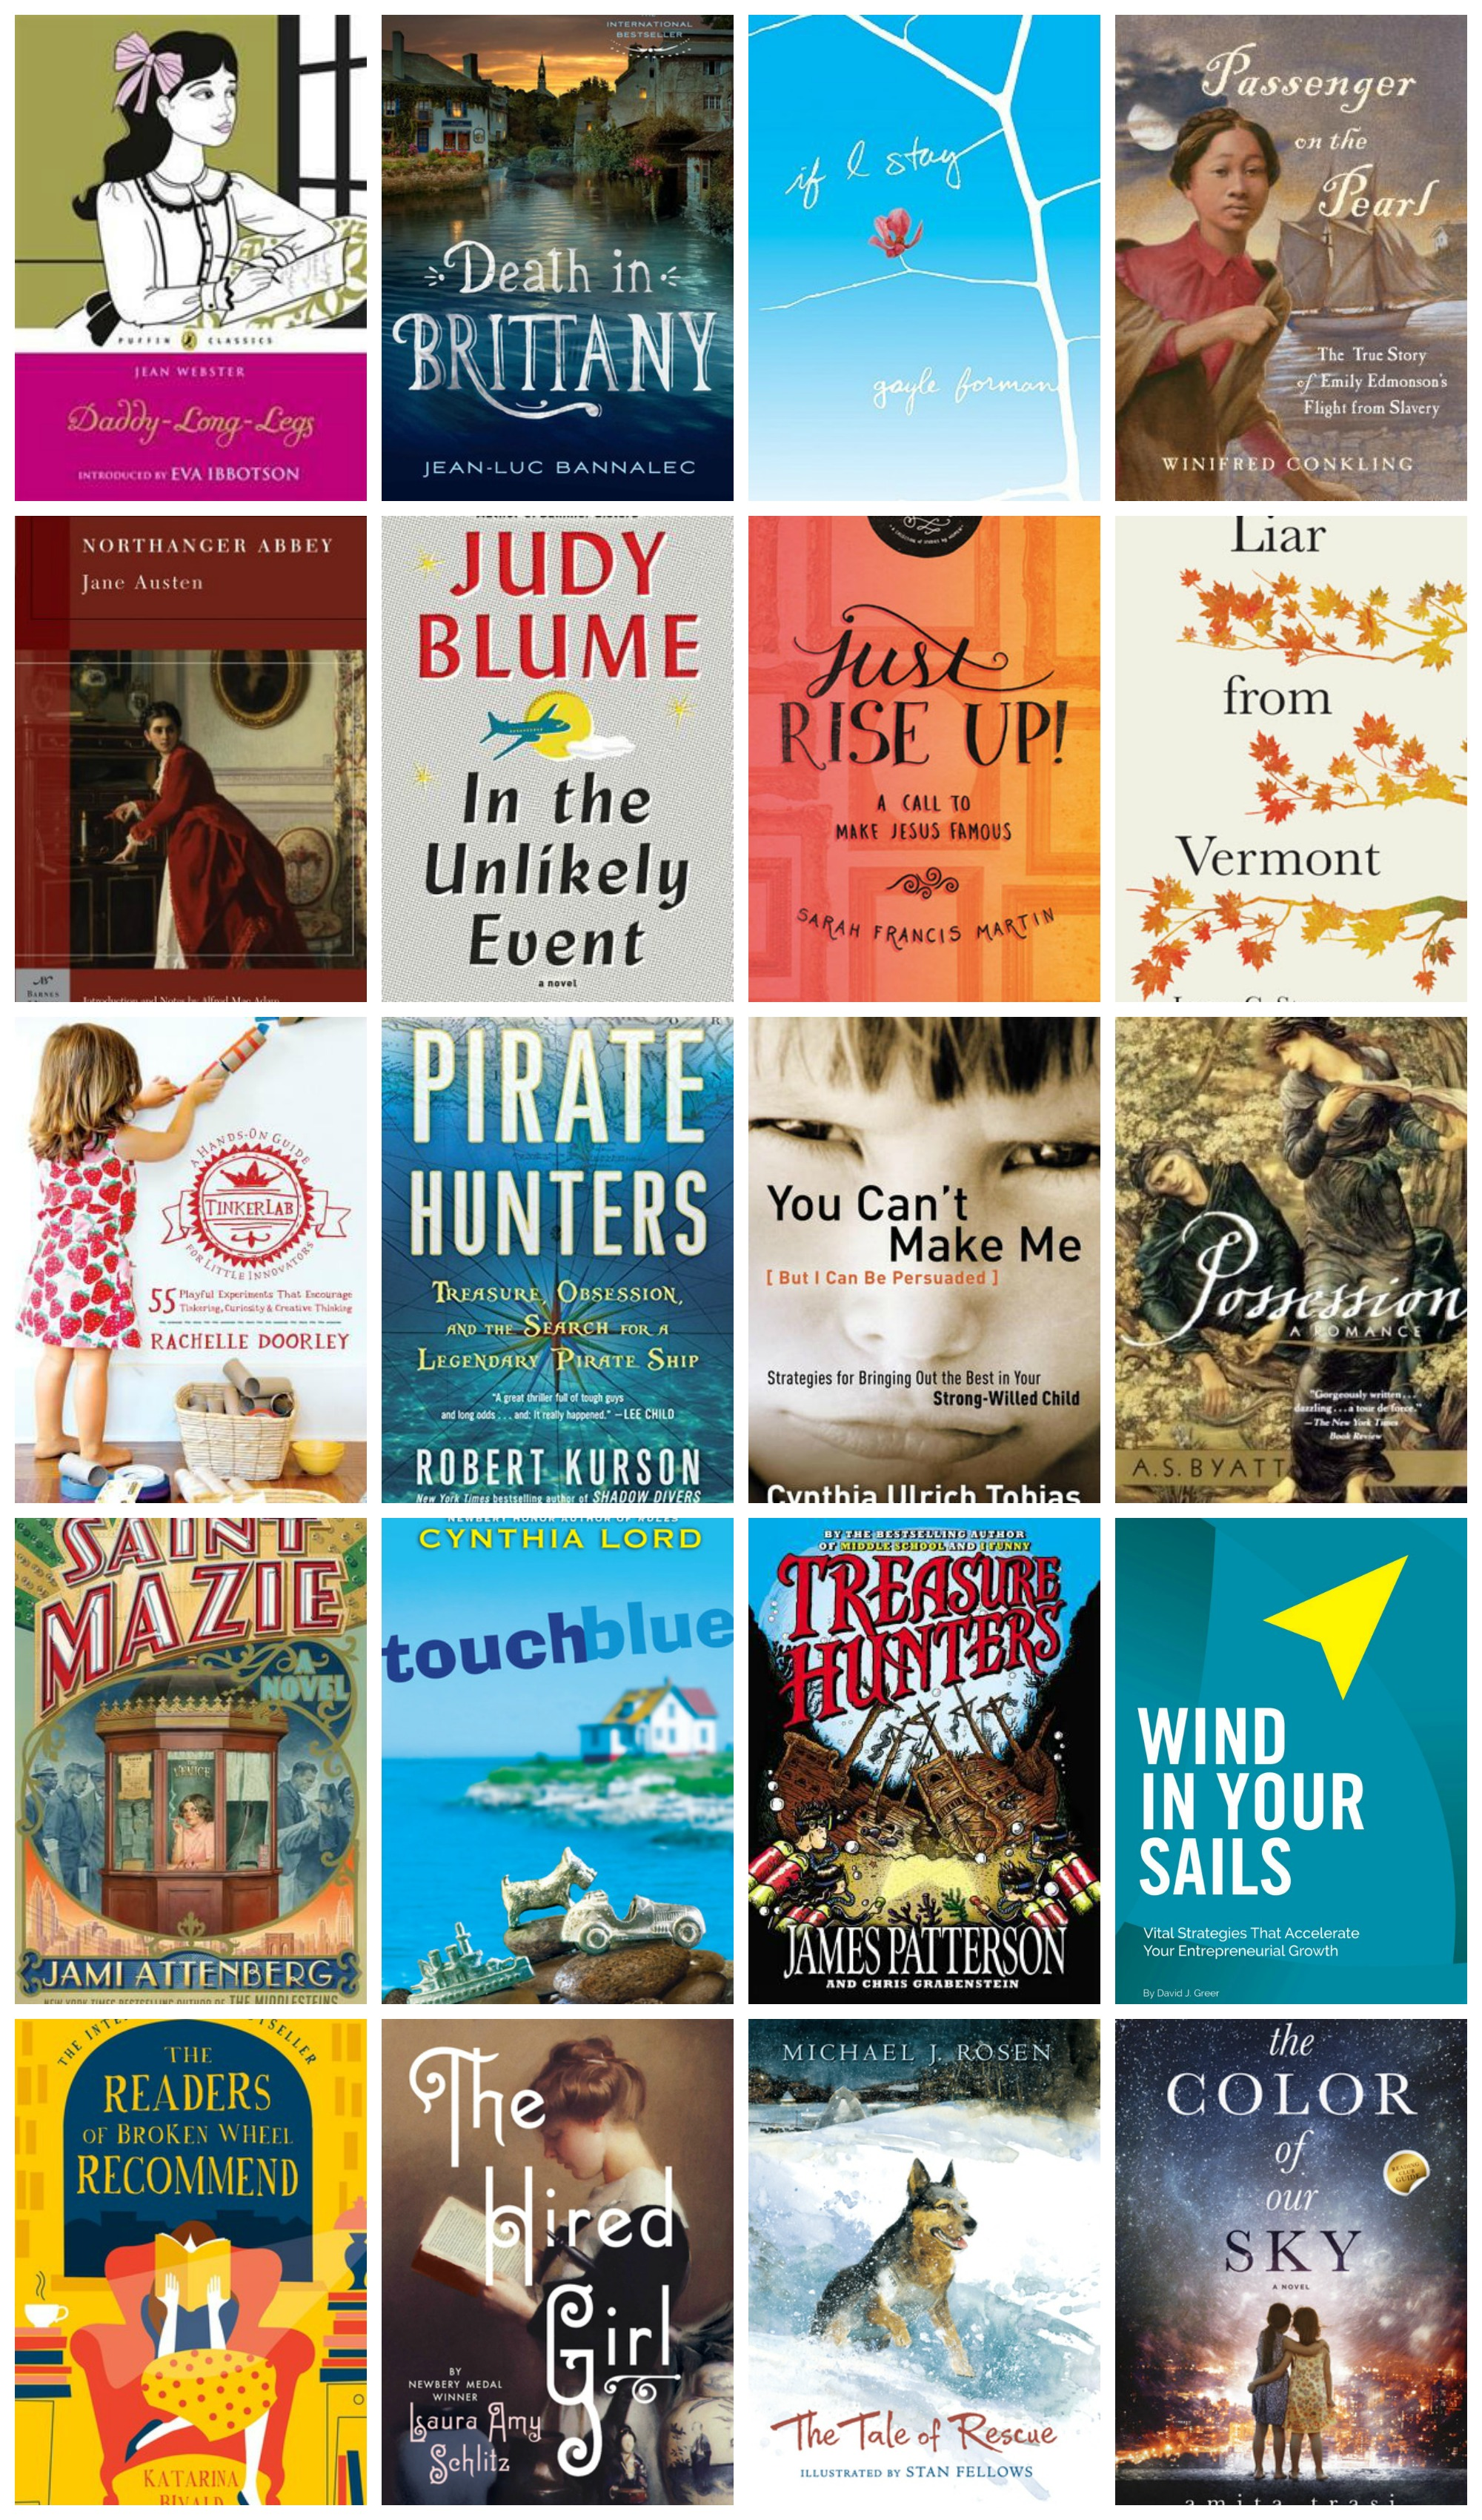 June 2015 New on the Stack - Linking up with The Deliberate Reader to share what books are #newonthestack in June 2015